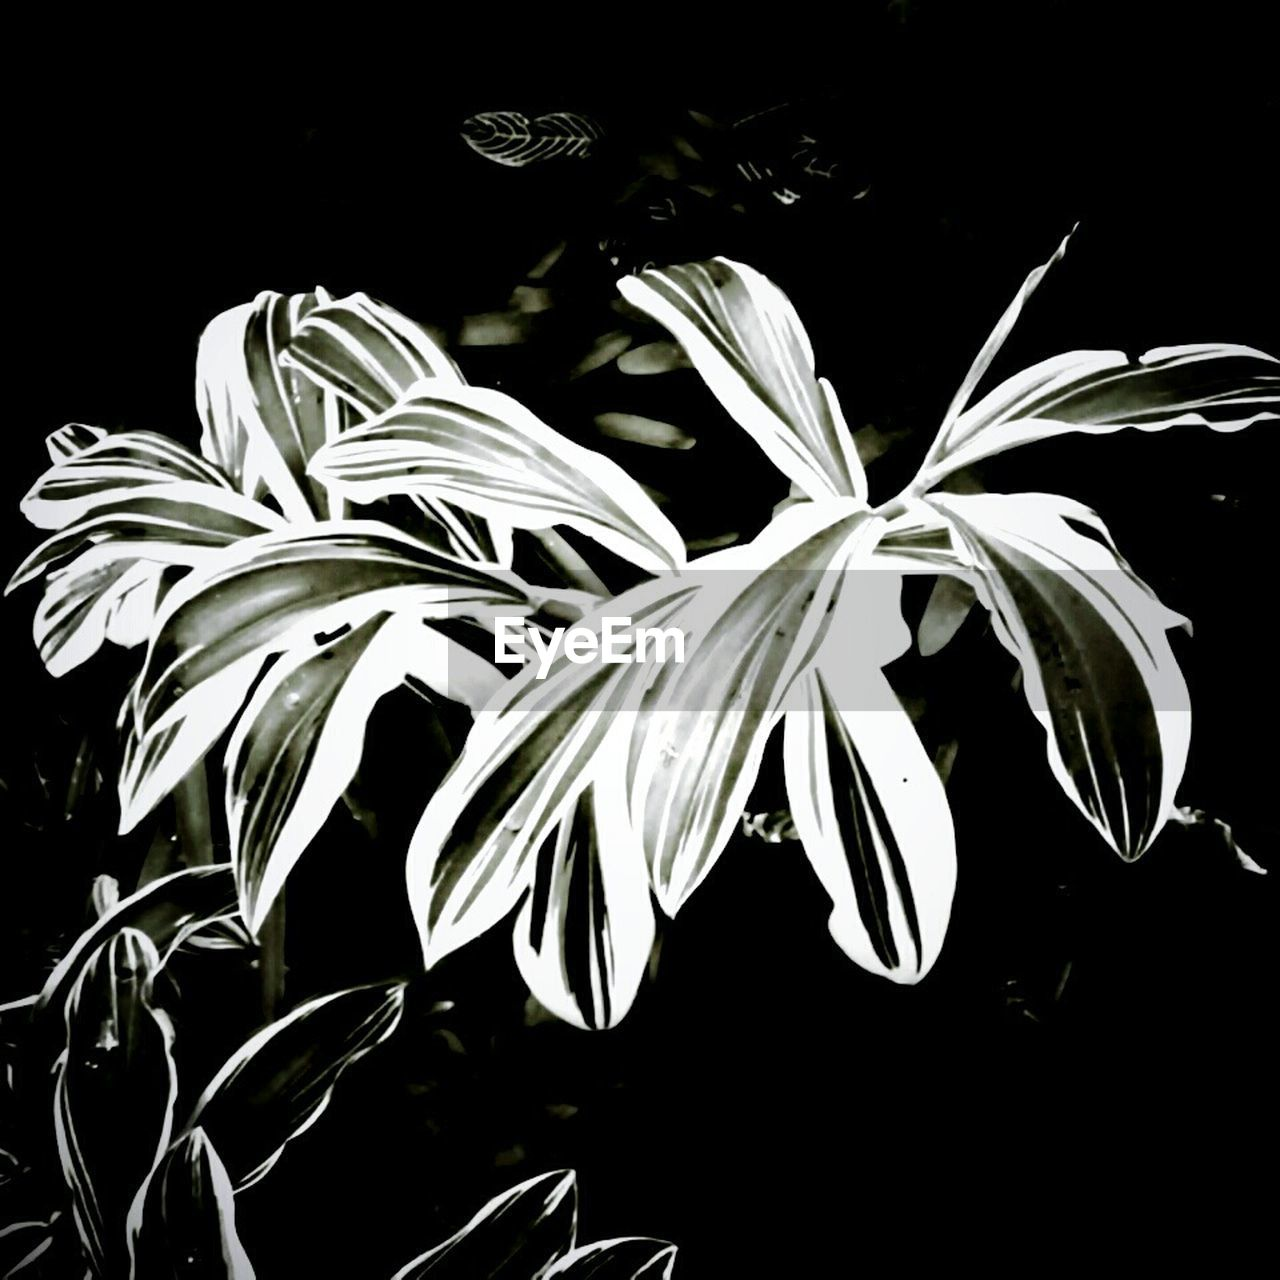 growth, flora, night, plant, leaf, black background, nature, no people, close-up, outdoors